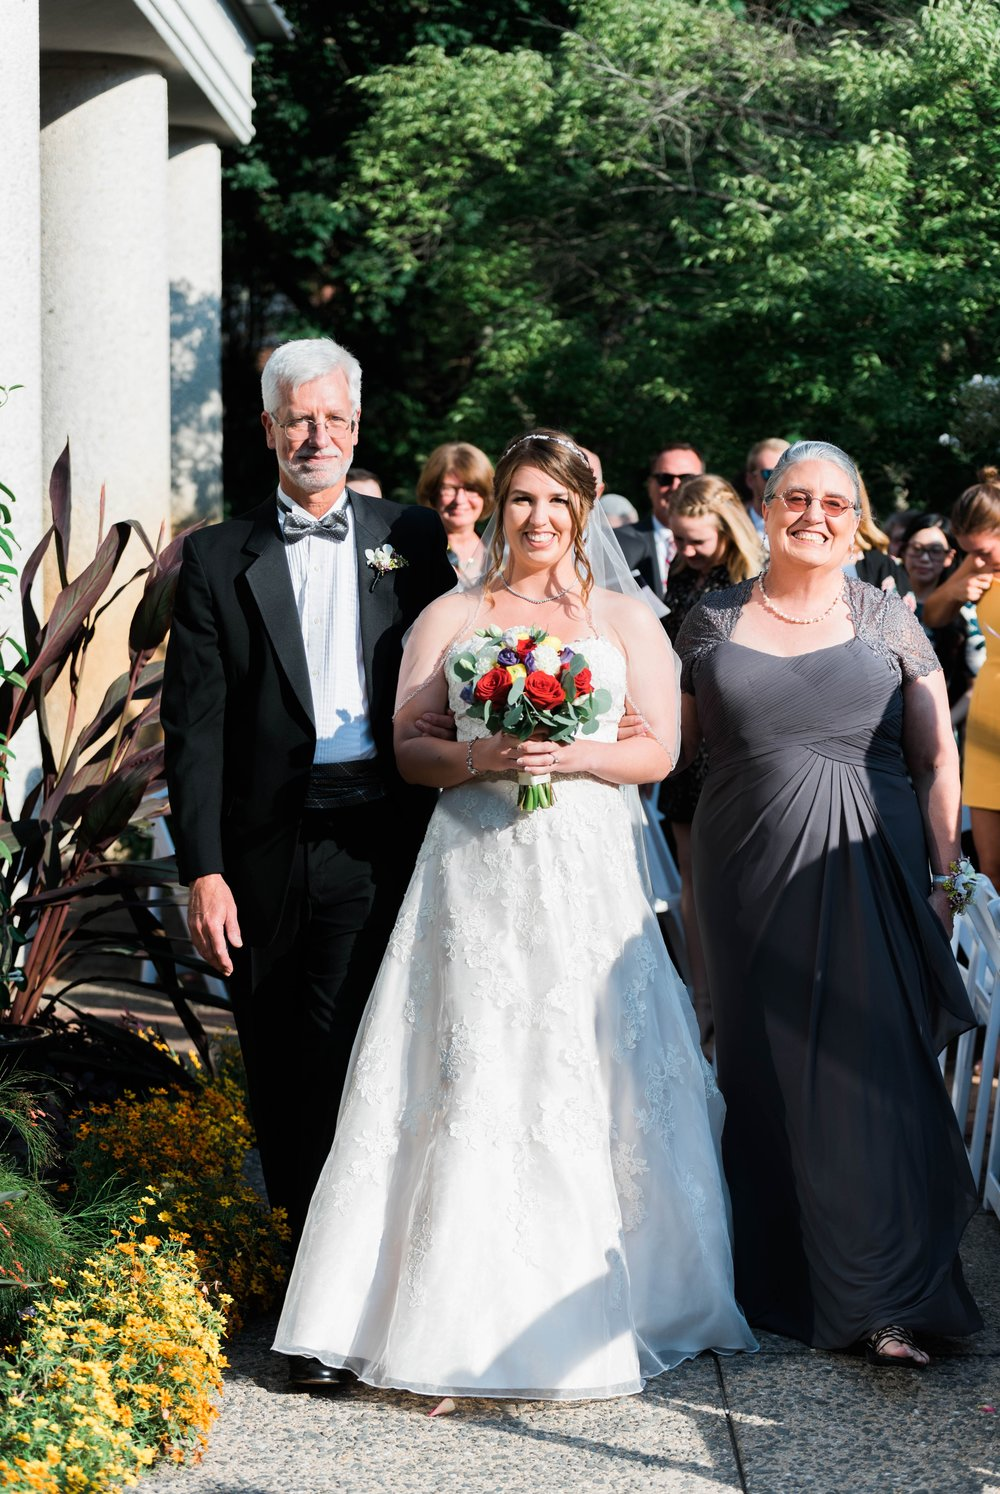 TheAtriumatMeadowlark_Virginiawedding photographer_lynchburgweddingphotographer_DCweddingPhotographer_KristinAaron 19.jpg